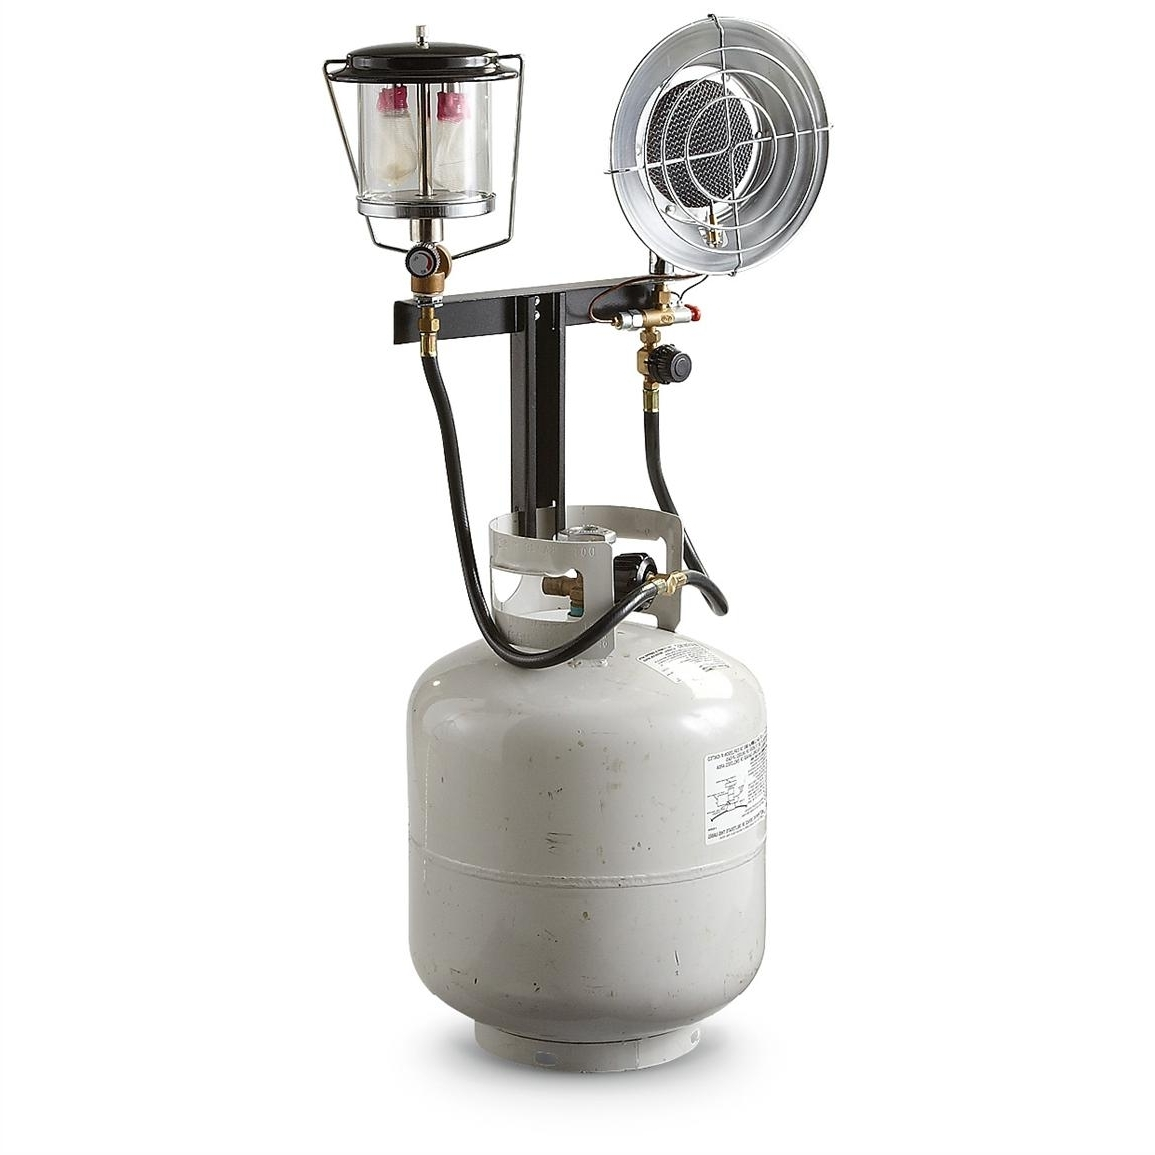 Propane: Propane Lantern Pertaining To Trendy Outdoor Propane Lanterns (View 11 of 20)